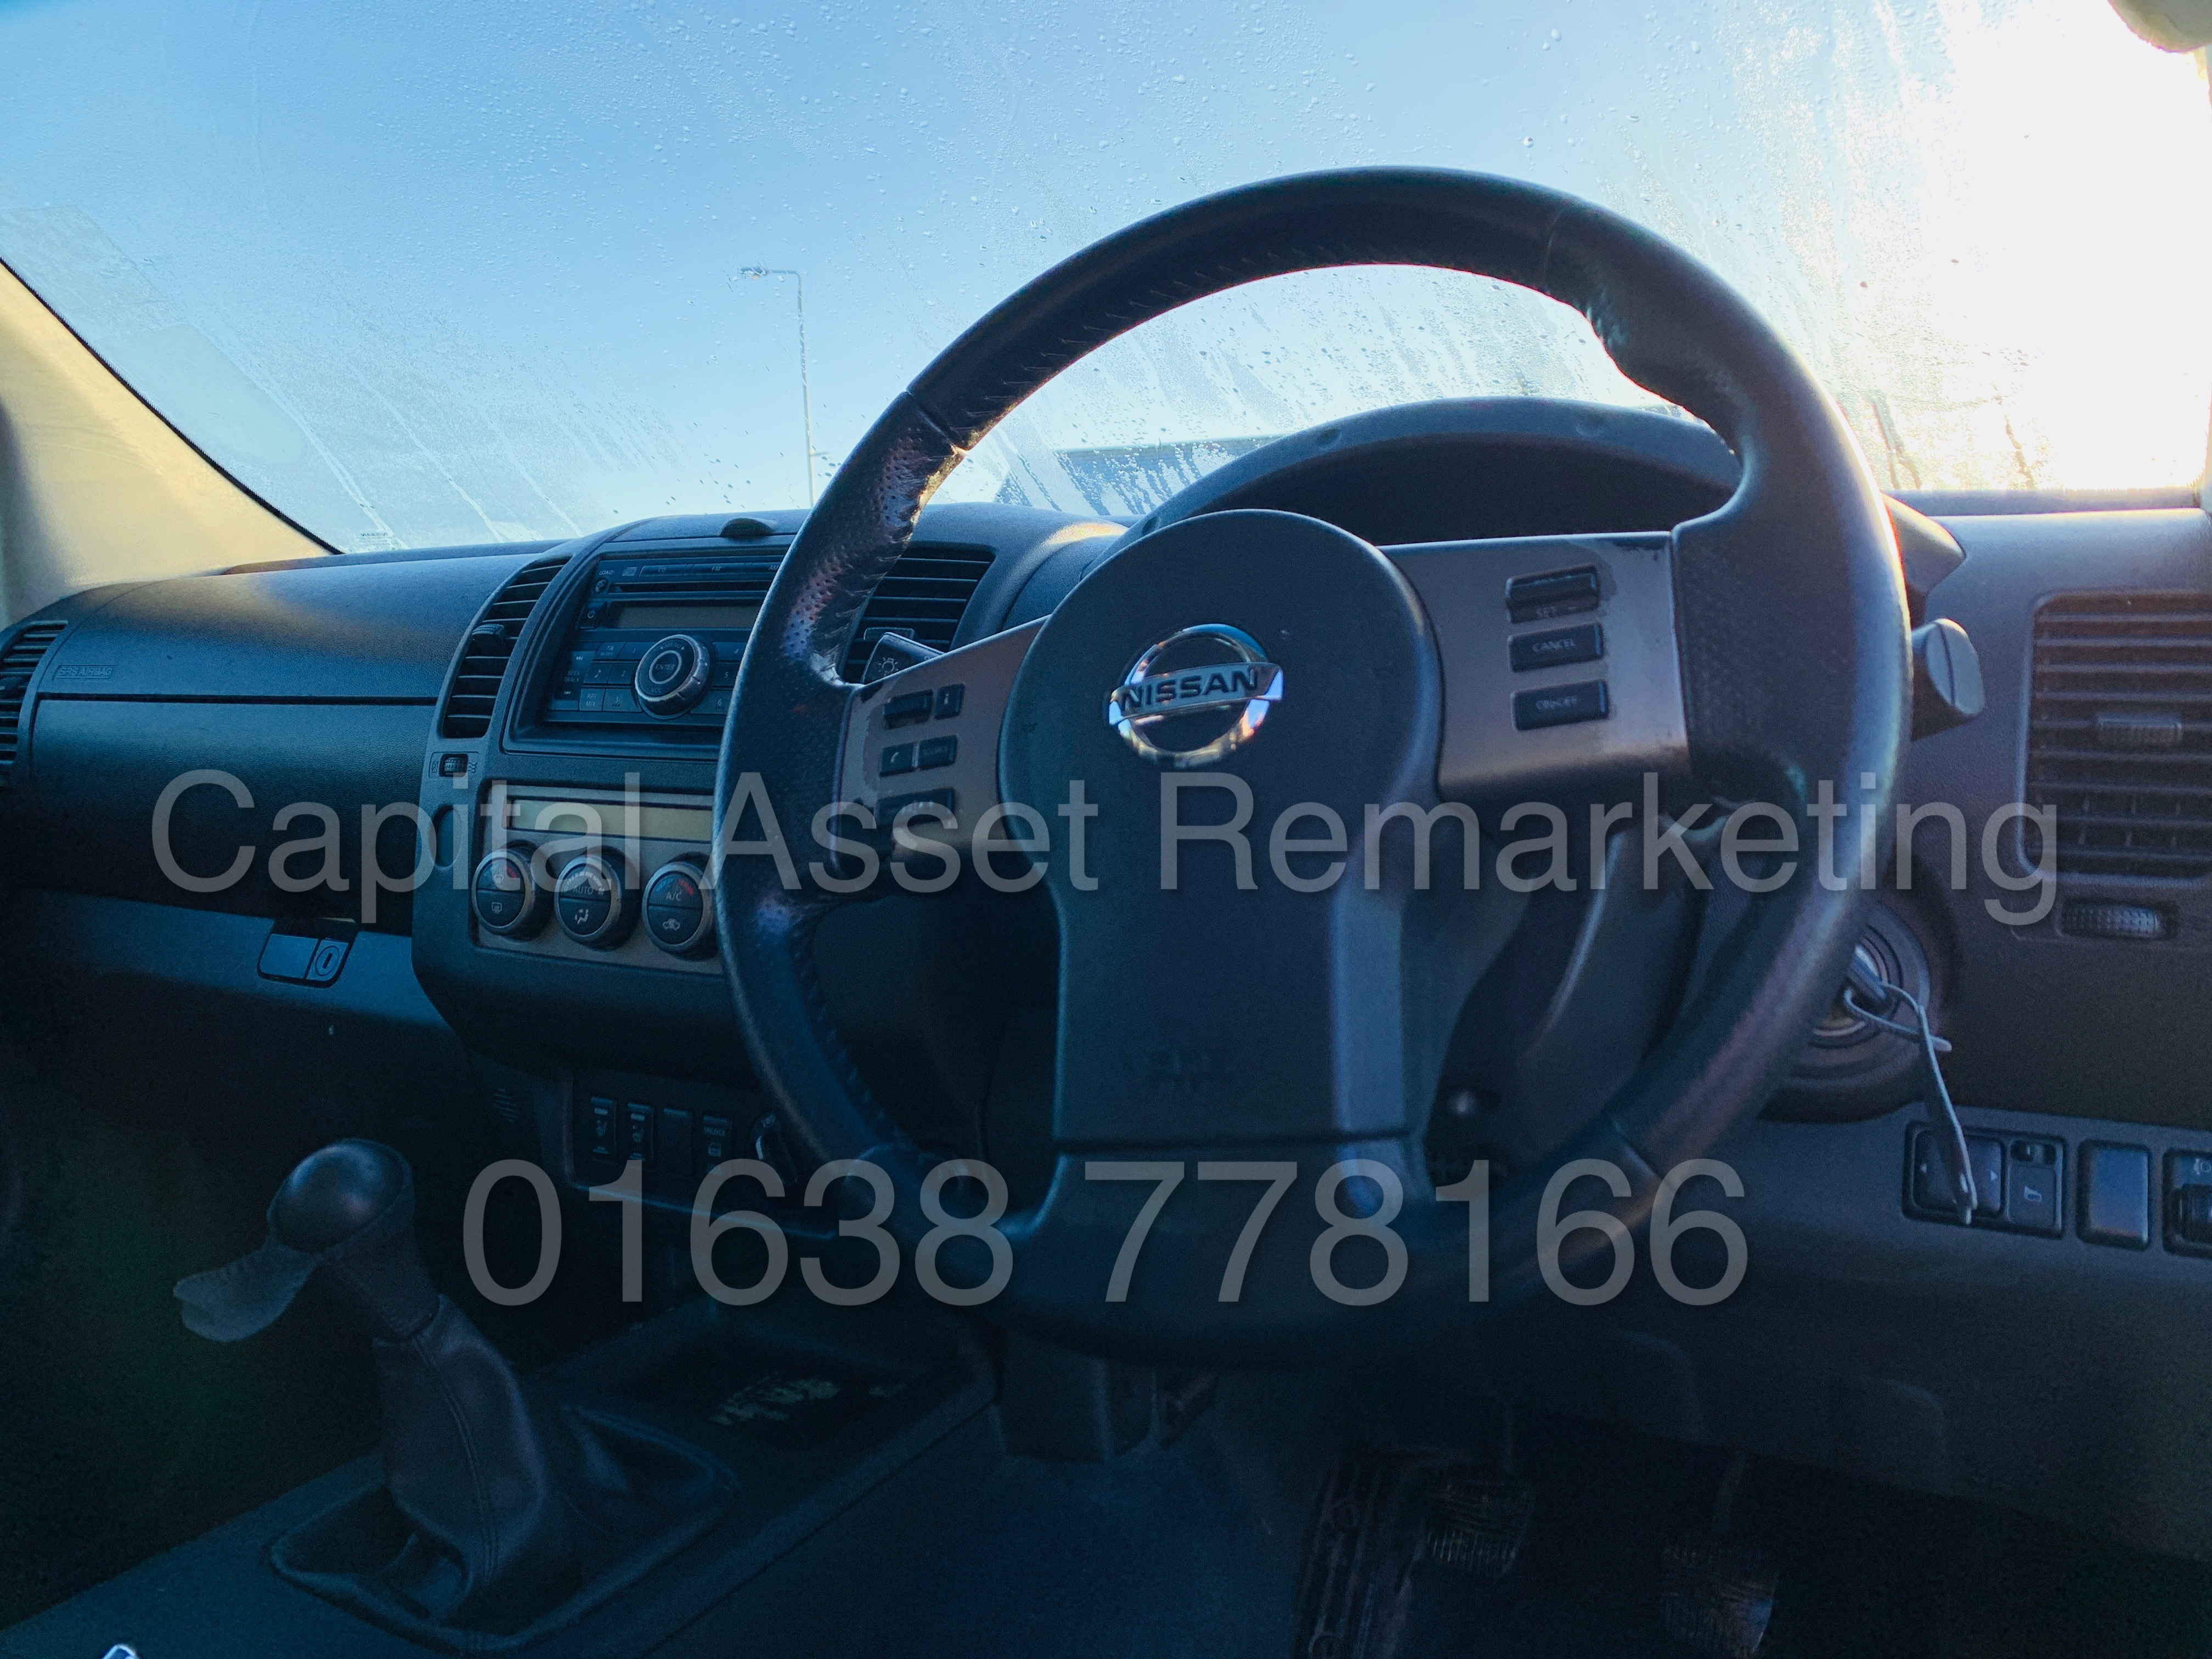 NISSAN NAVARA *OUTLAW* DOUBLE CAB PICK-UP *4X4* (2009) '2.5 DCI-171 BHP- 6 SPEED' *AIR CON* (NO VAT) - Image 31 of 42